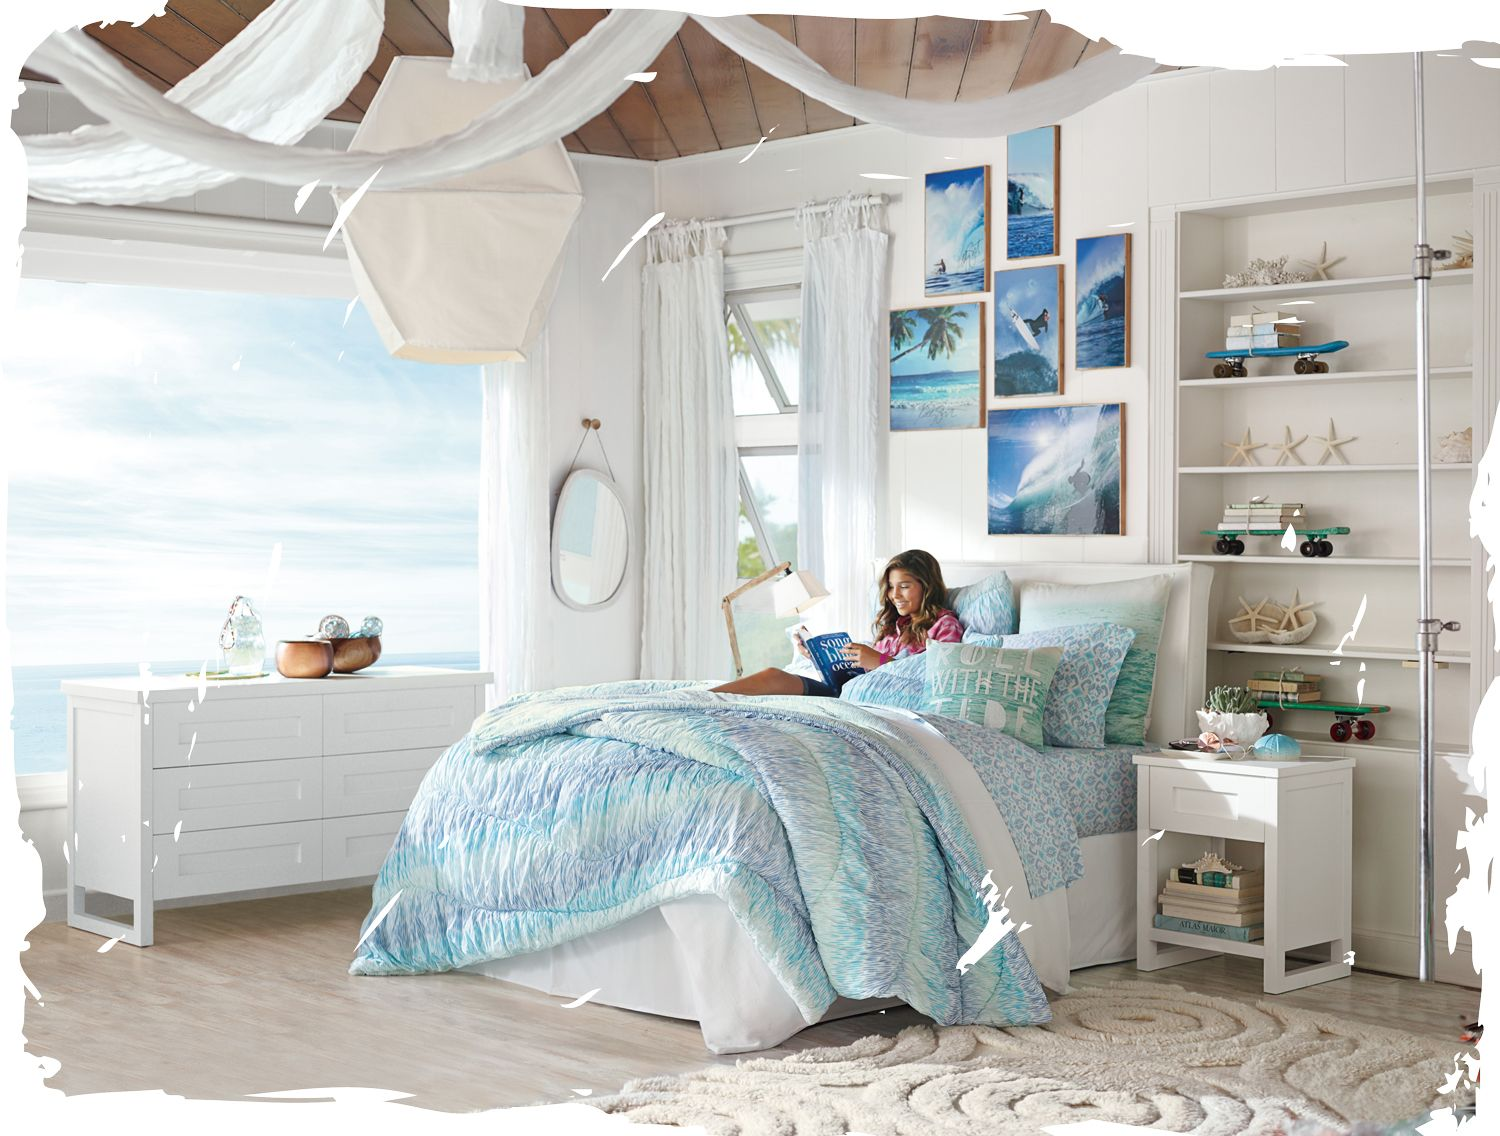 Teen Beach Bedroom Ideas Part - 18: Kelly Slater For PB Teen · Surf BedroomDream BedroomDream RoomsBeach  Bedroom DecorGirls ...